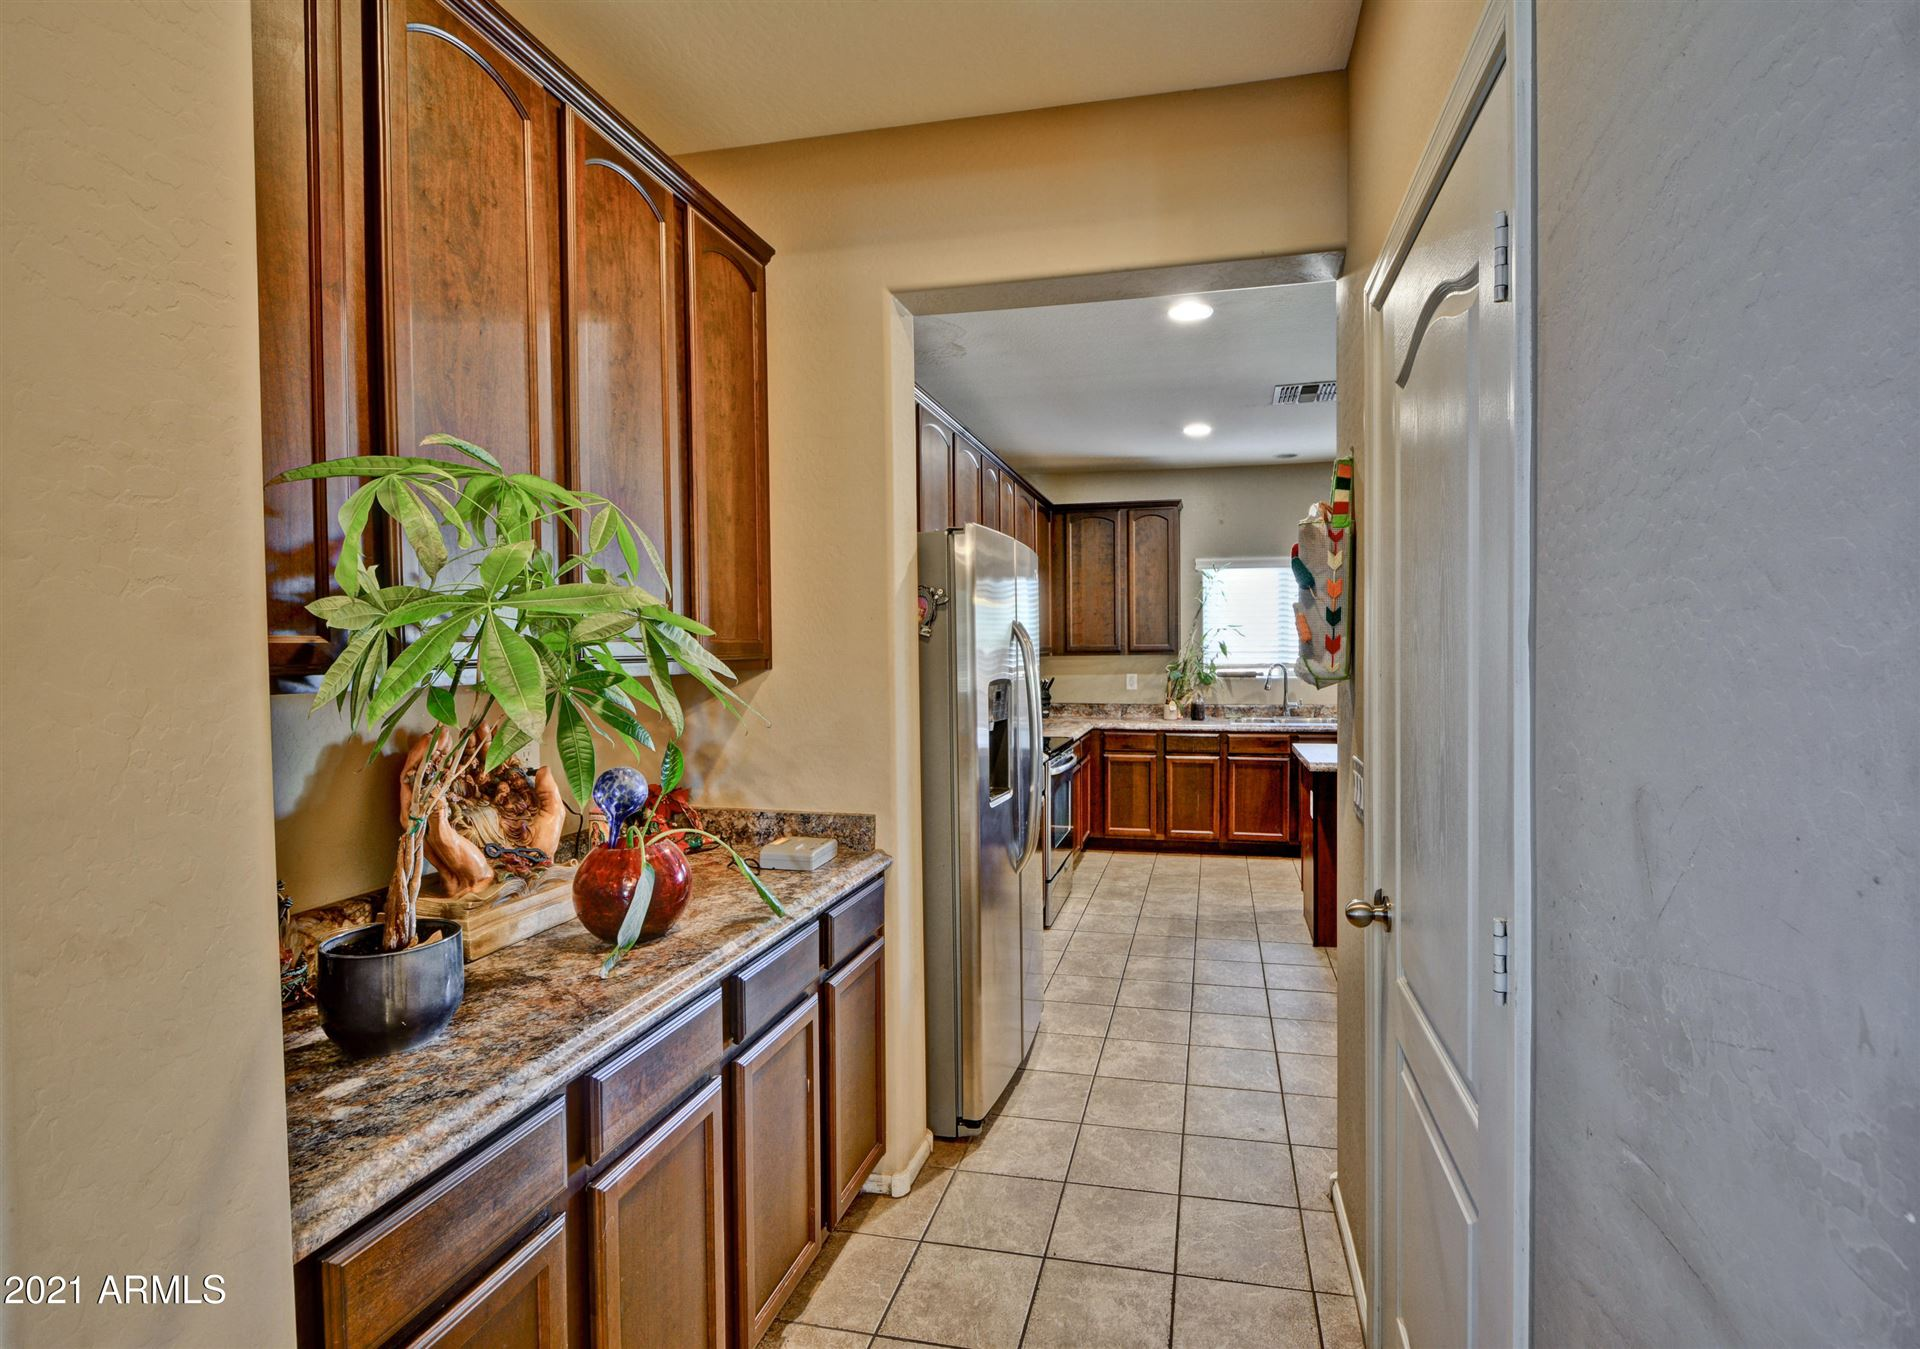 Photo of 8912 W CROWN KING Road, Tolleson, AZ 85353 (MLS # 6200429)